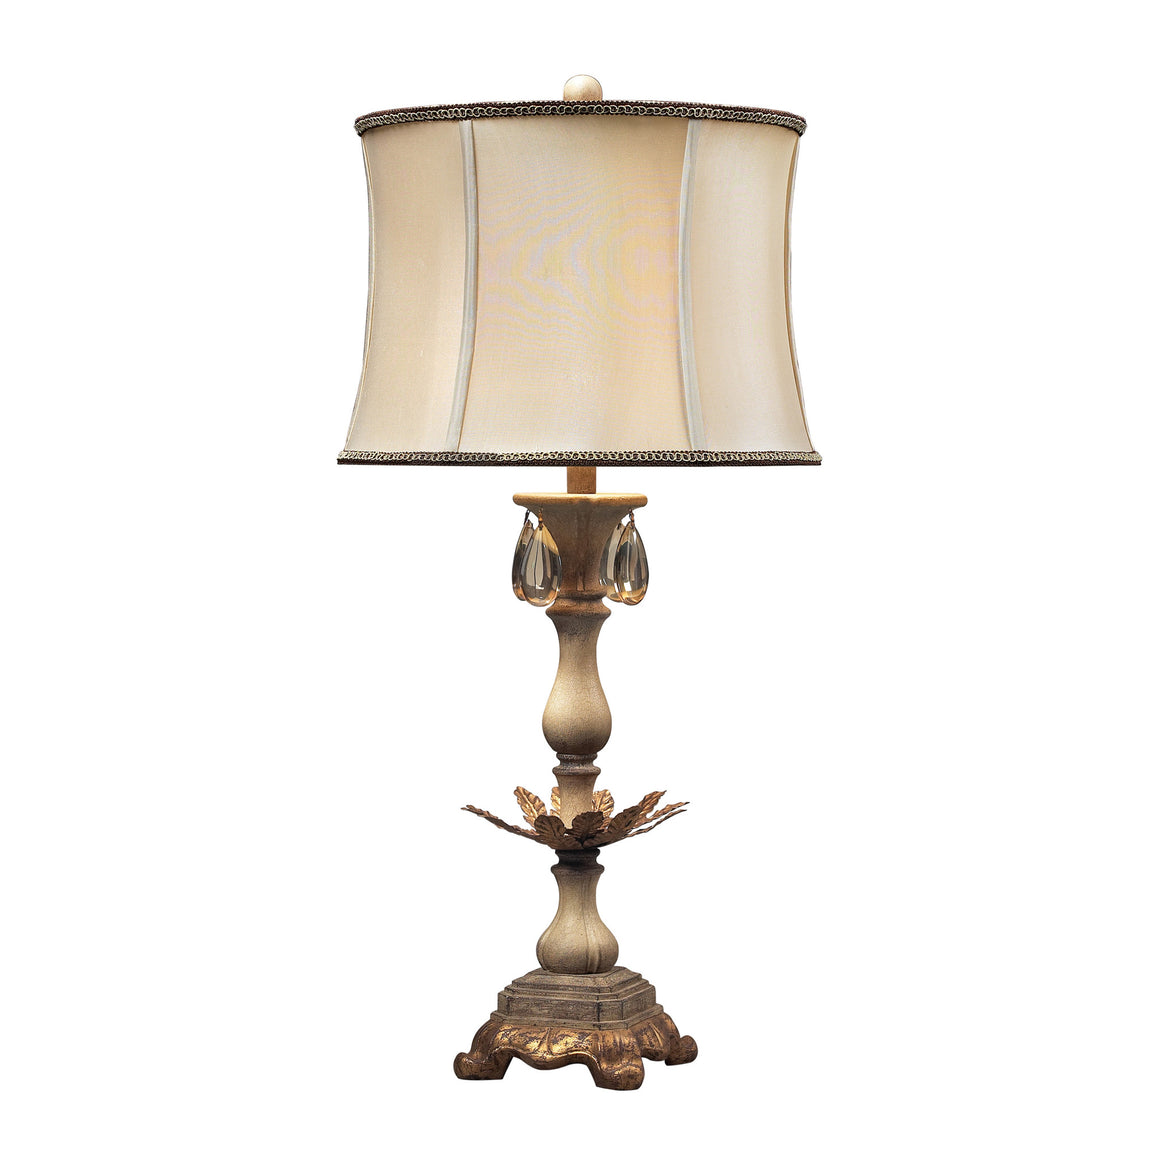 Accent Lamp In Cream And Soft Gold 93-10023